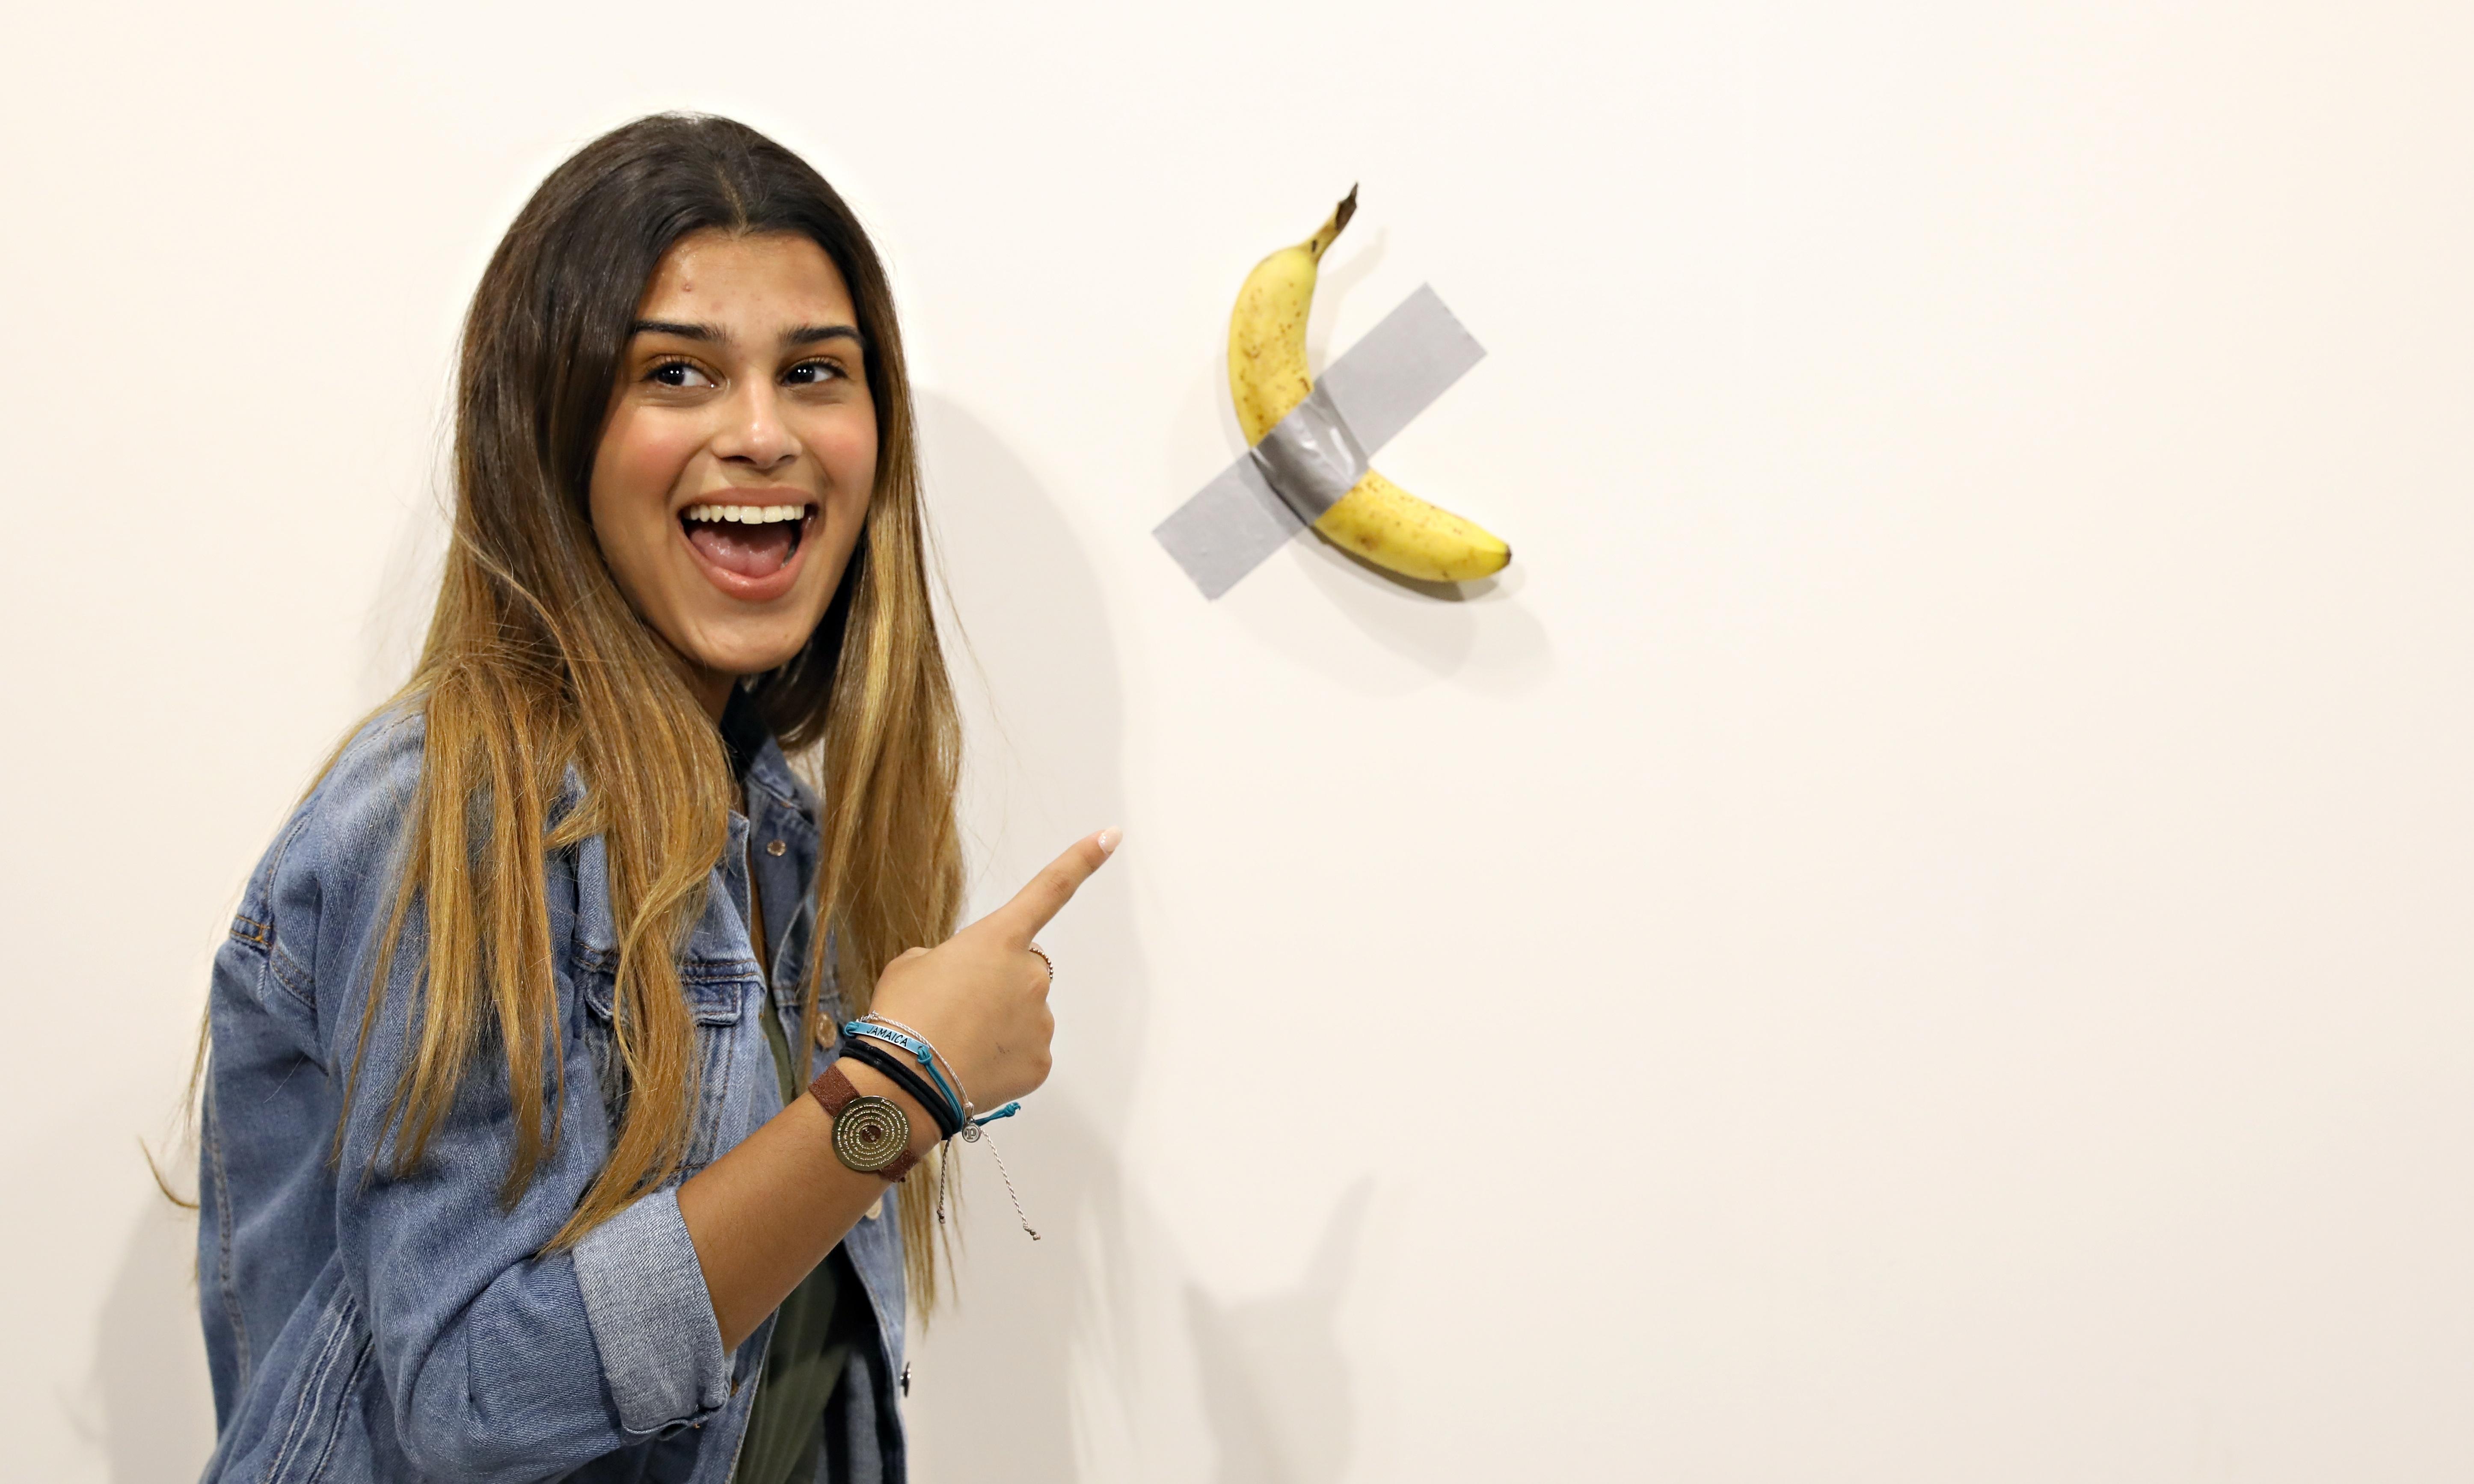 Banana artwork that fetched $120,000 is eaten by 'hungry' artist